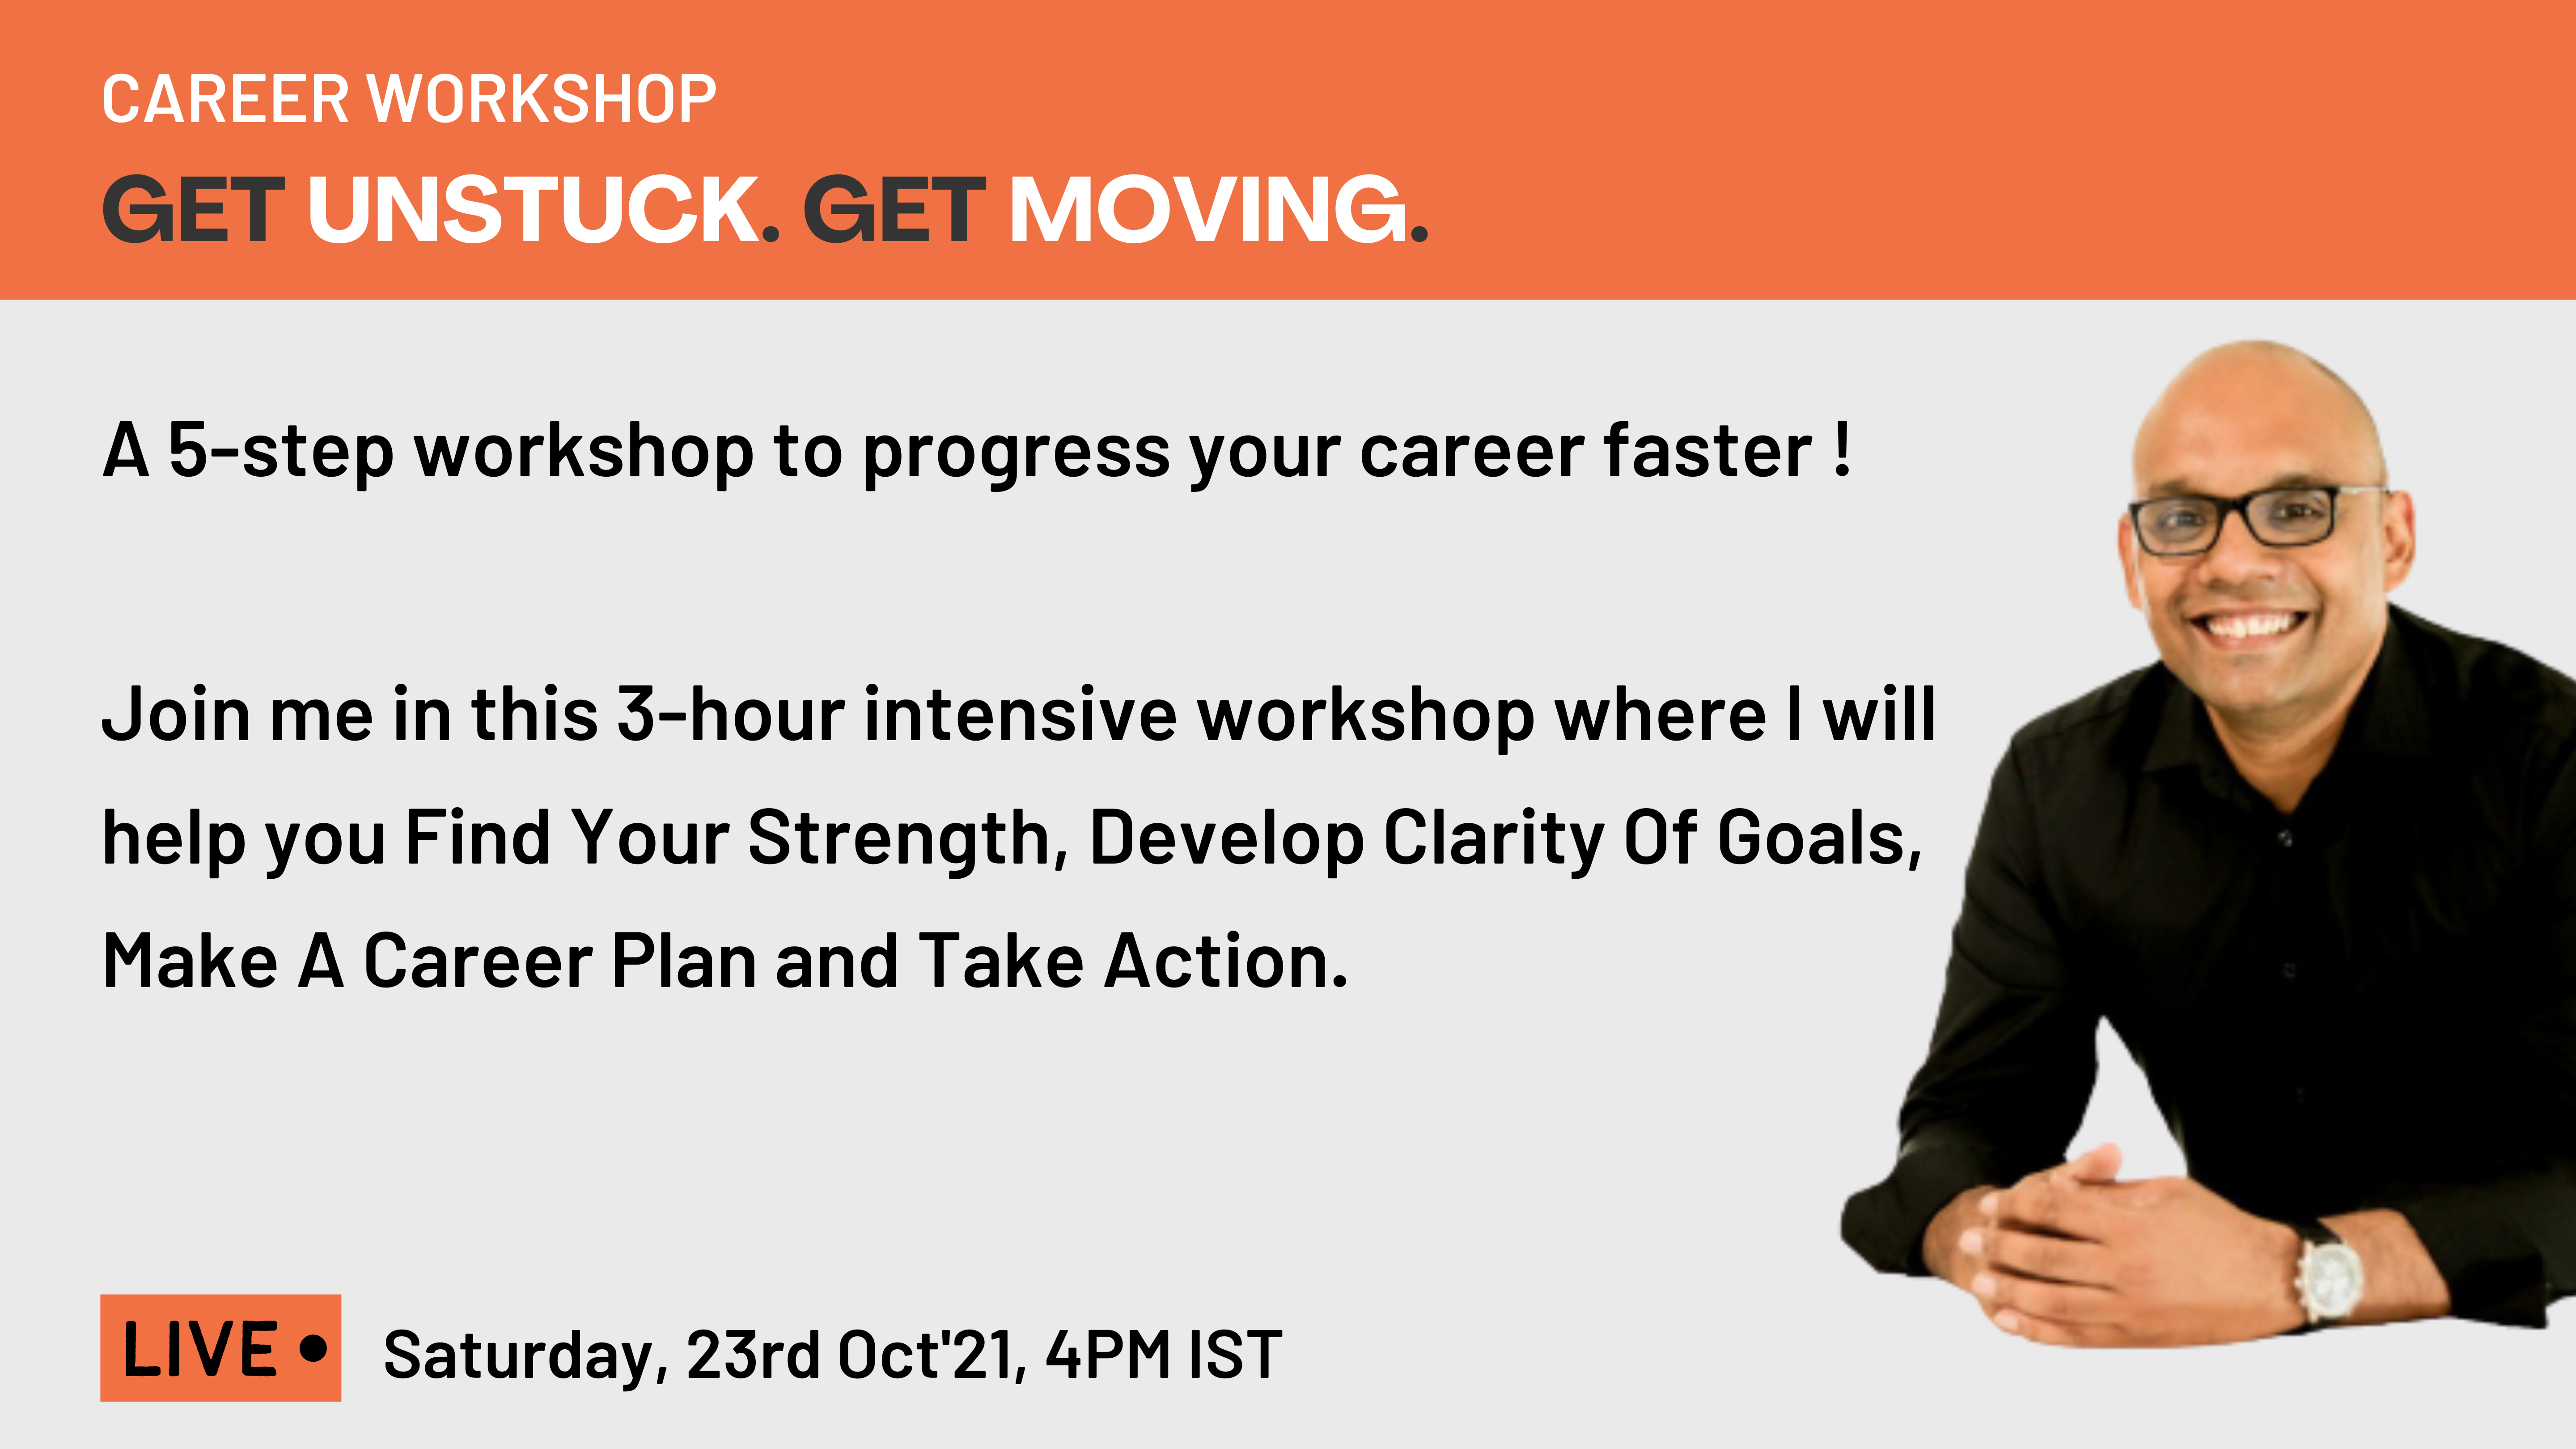 GET UNSTUCK. GET MOVING. A 5-STEP PLAN TO GET THE CAREER YOU WANT (2)